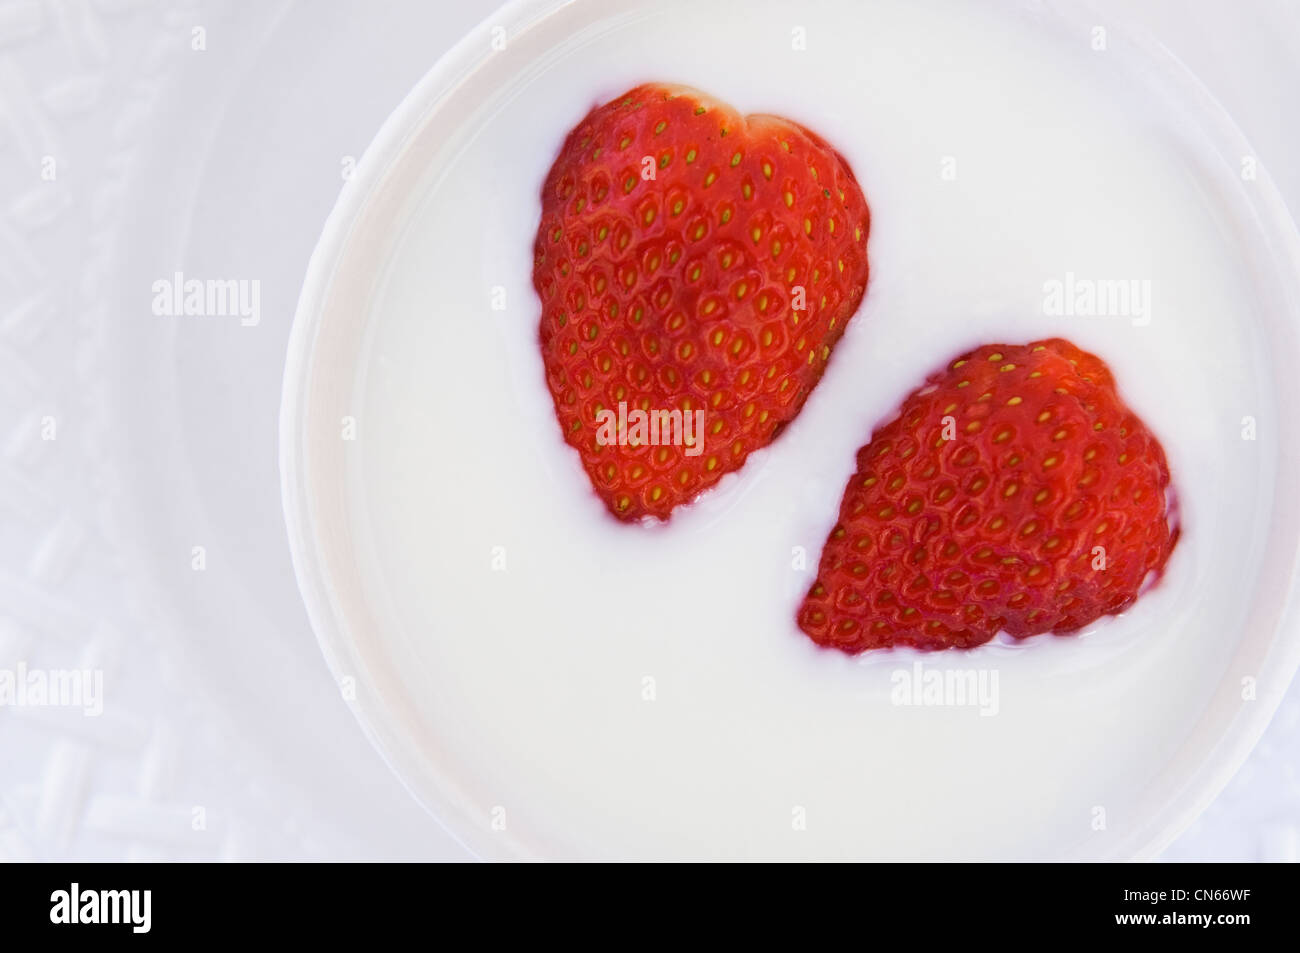 Strawberries and Cream on White Plate Stock Photo